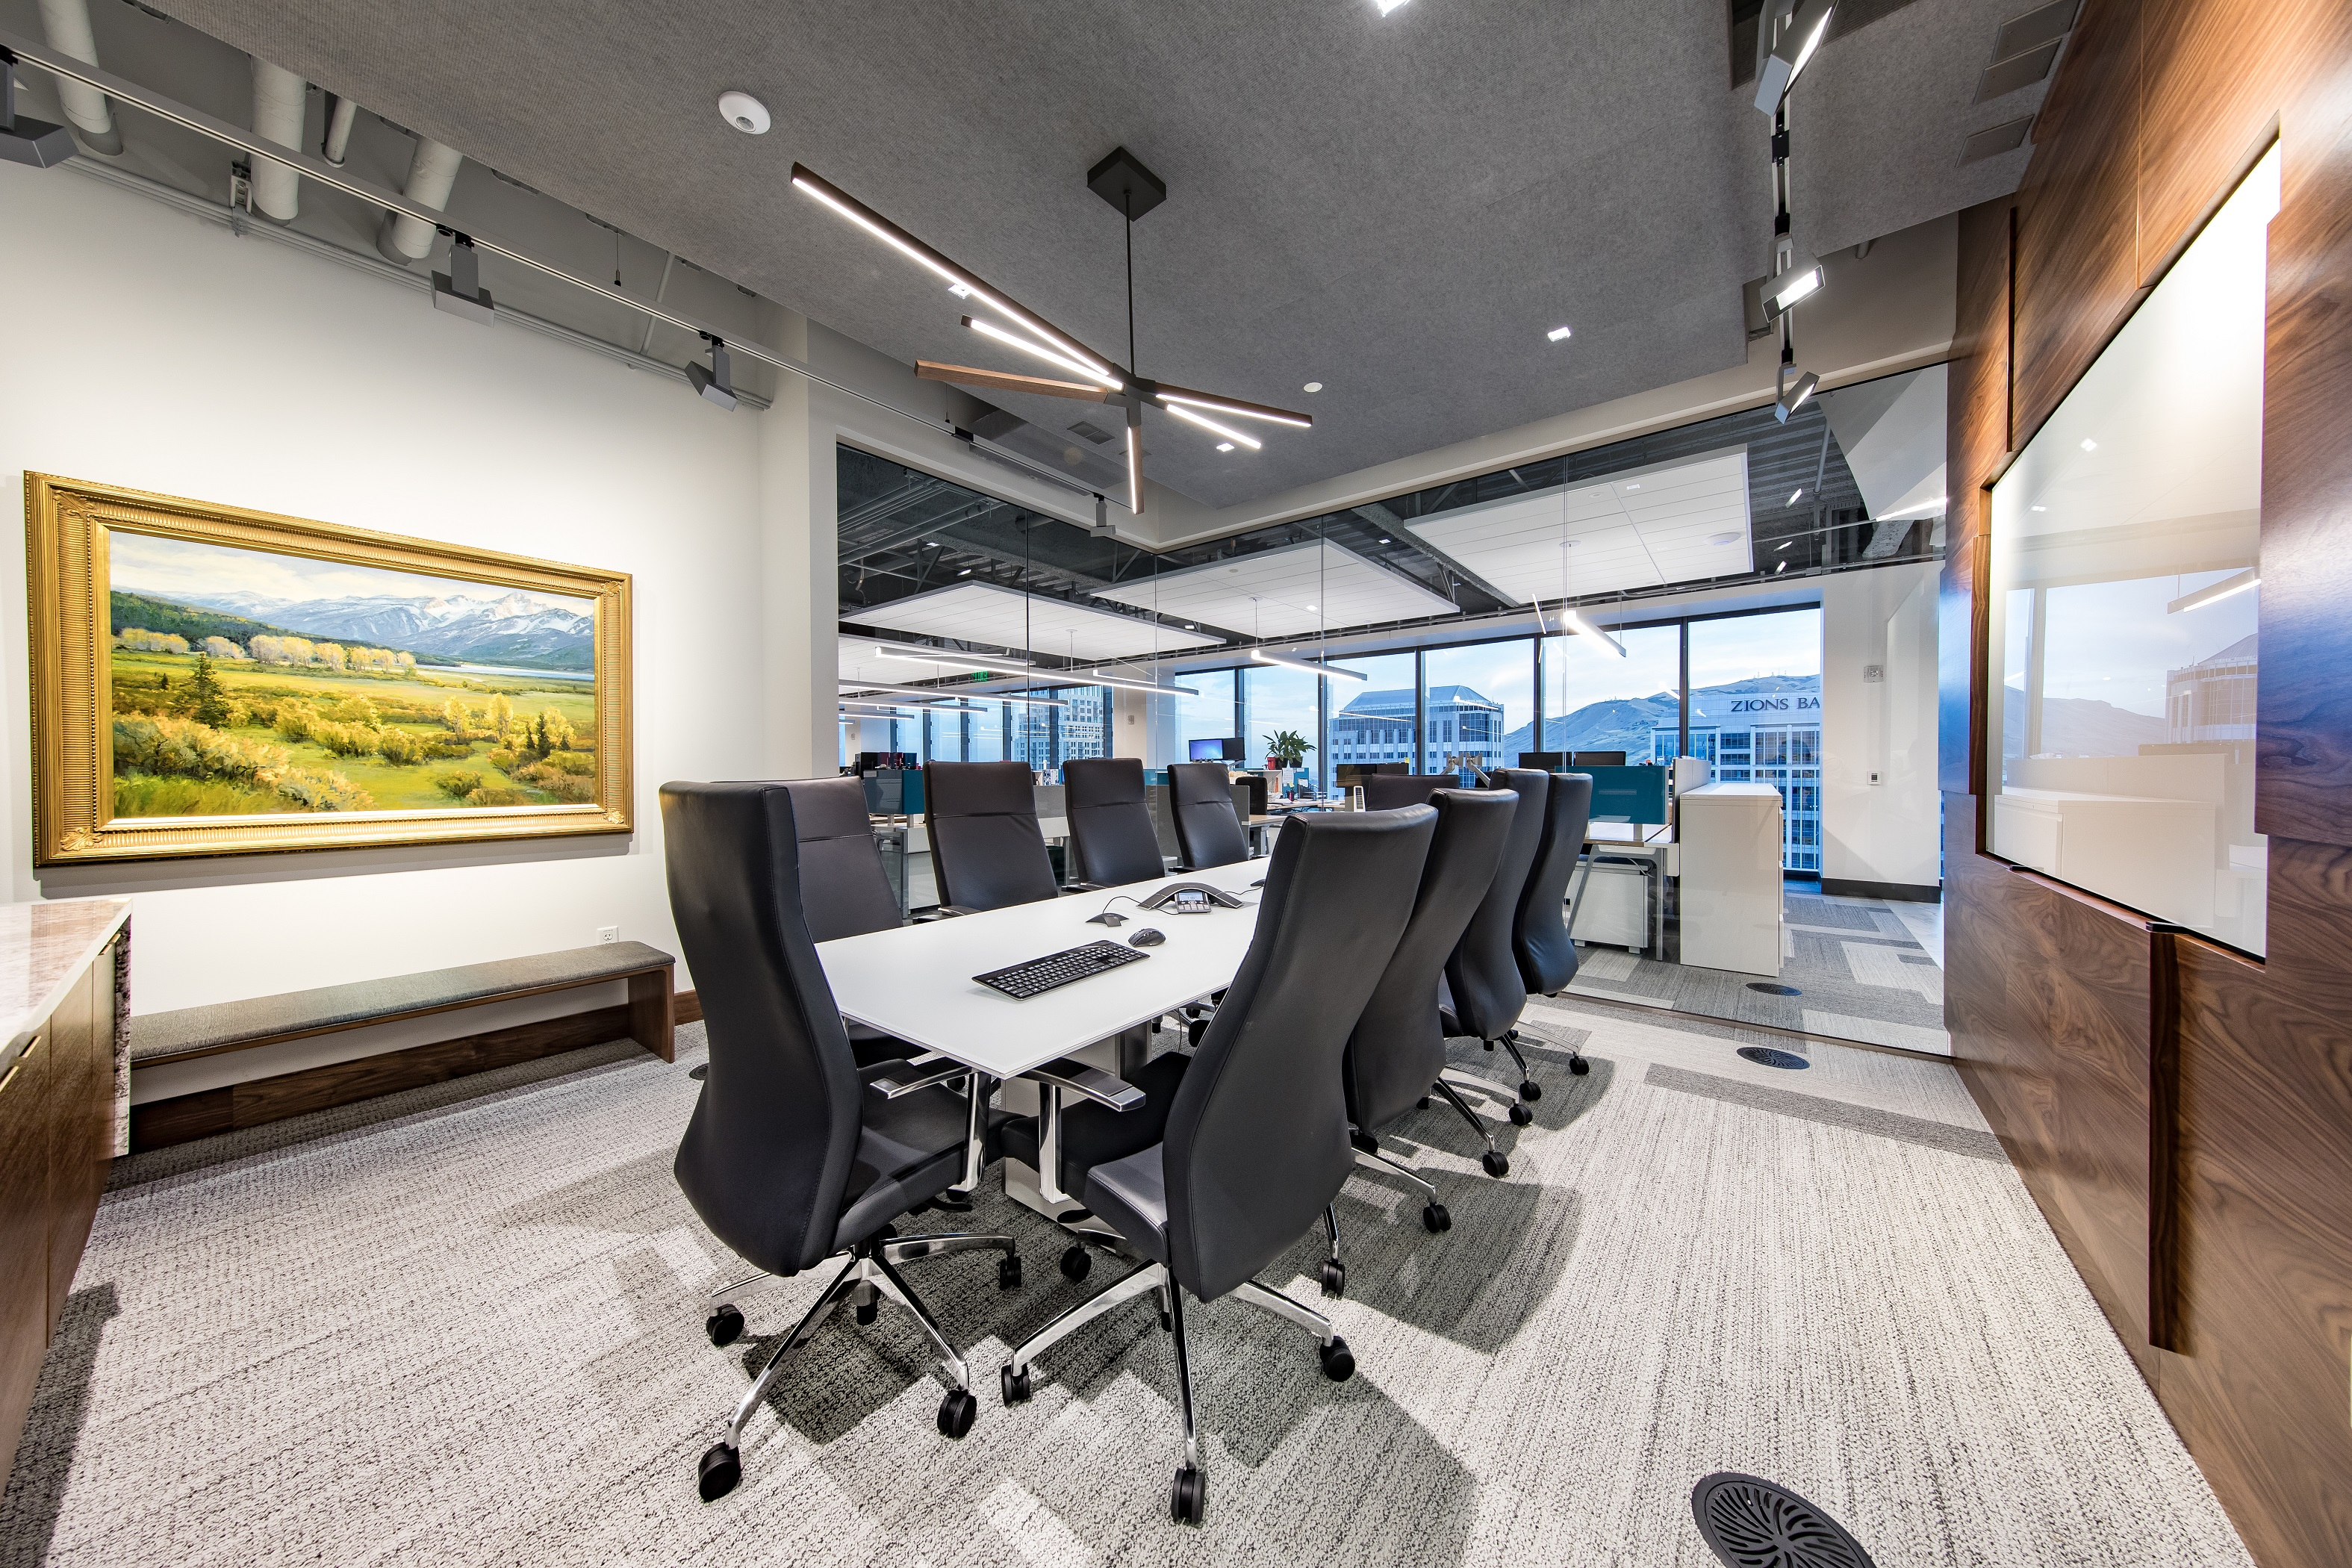 The modern, new board room in Bonneville's headquarters has two glass walls, one textured wood wall featuring an inset, glass white board, and an illuminated wall featuring a Utah landscape painting.